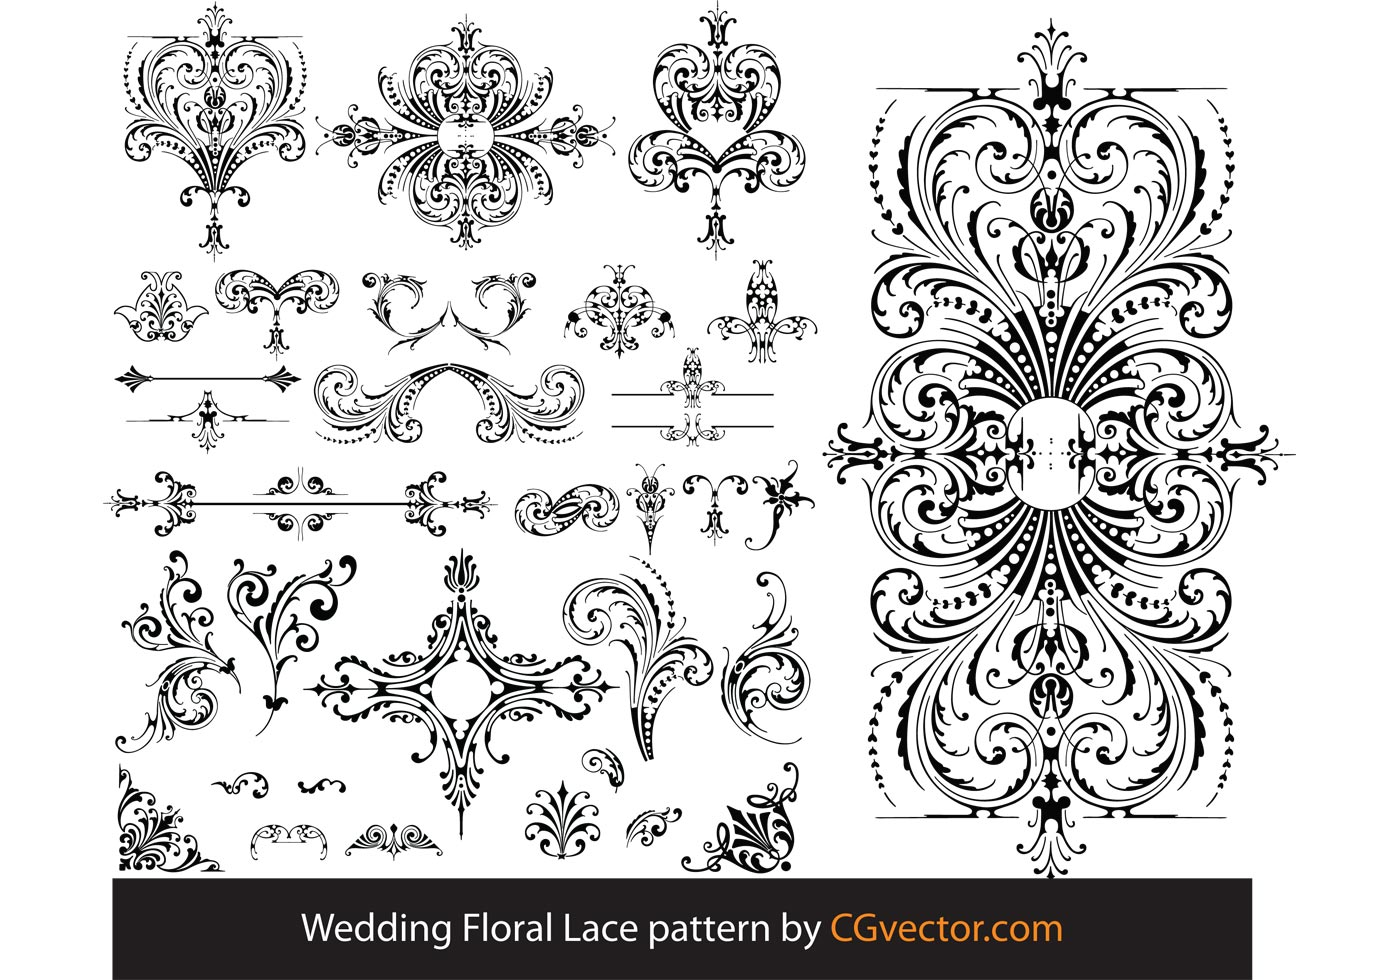 1400x980 Wedding Floral Lace Pattern Vector